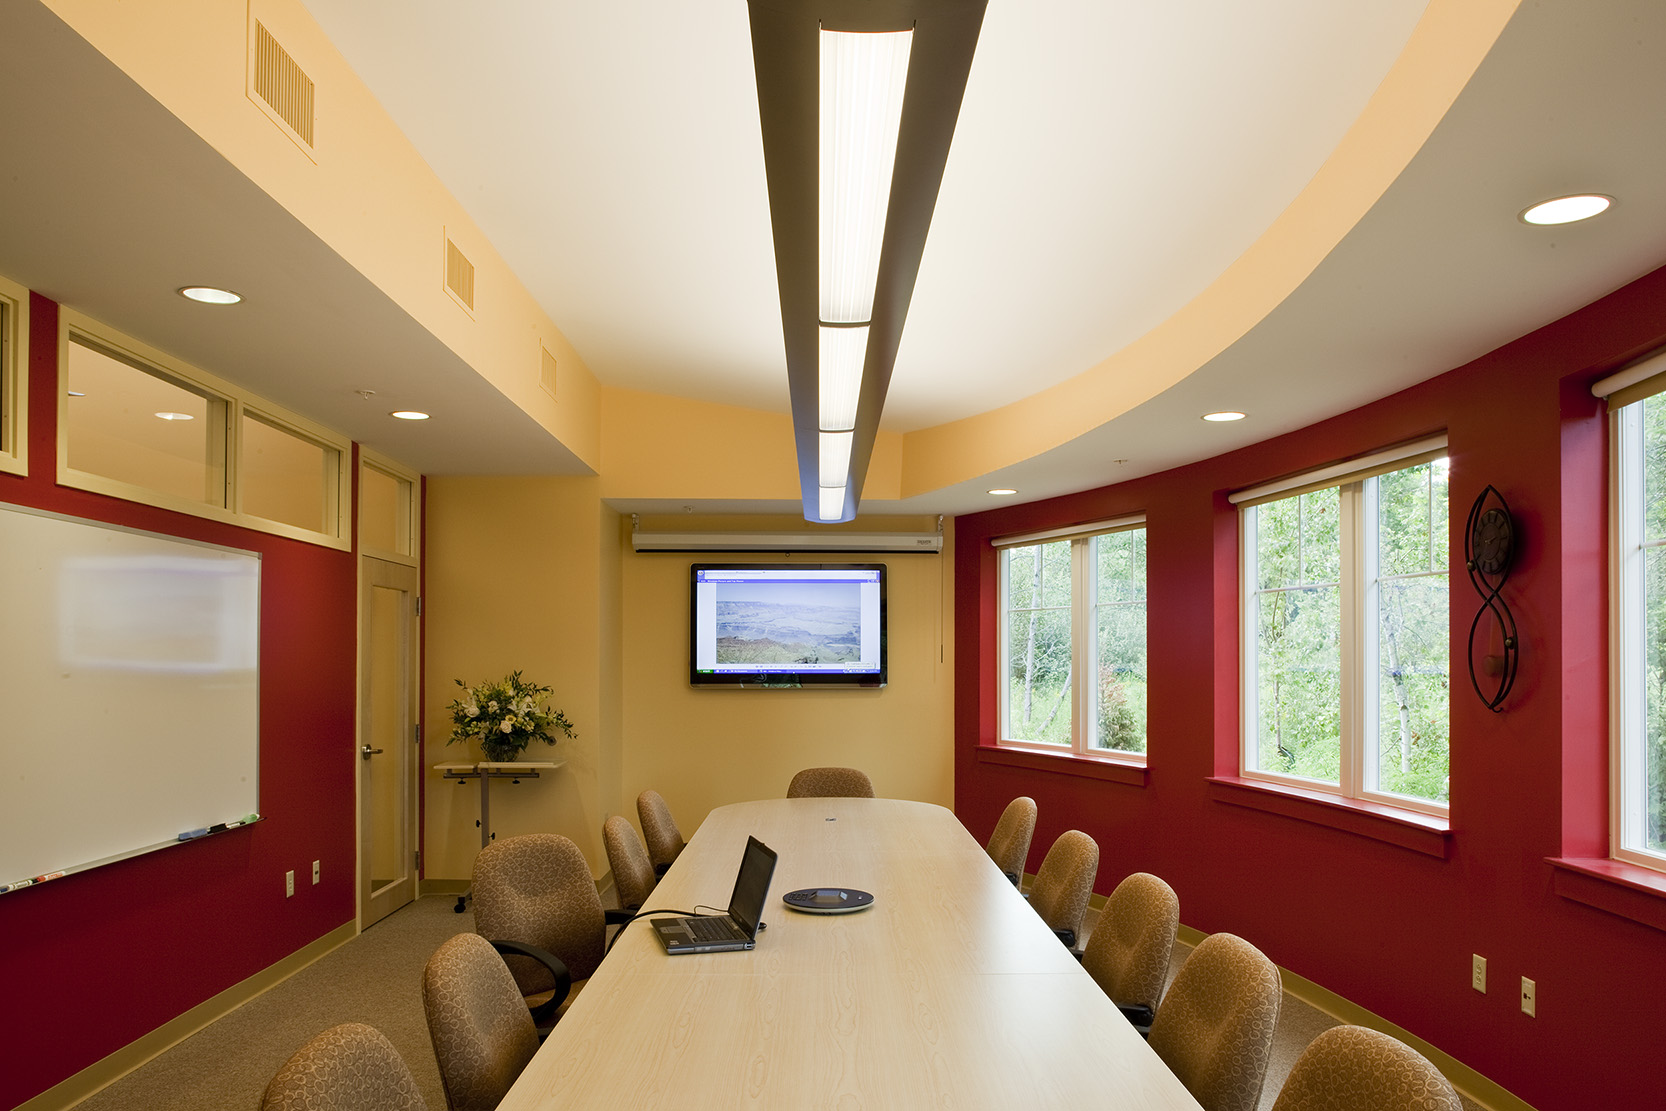 The curved conference room, adjacent to the break room and back patio, is used for presentations to the board and top management.